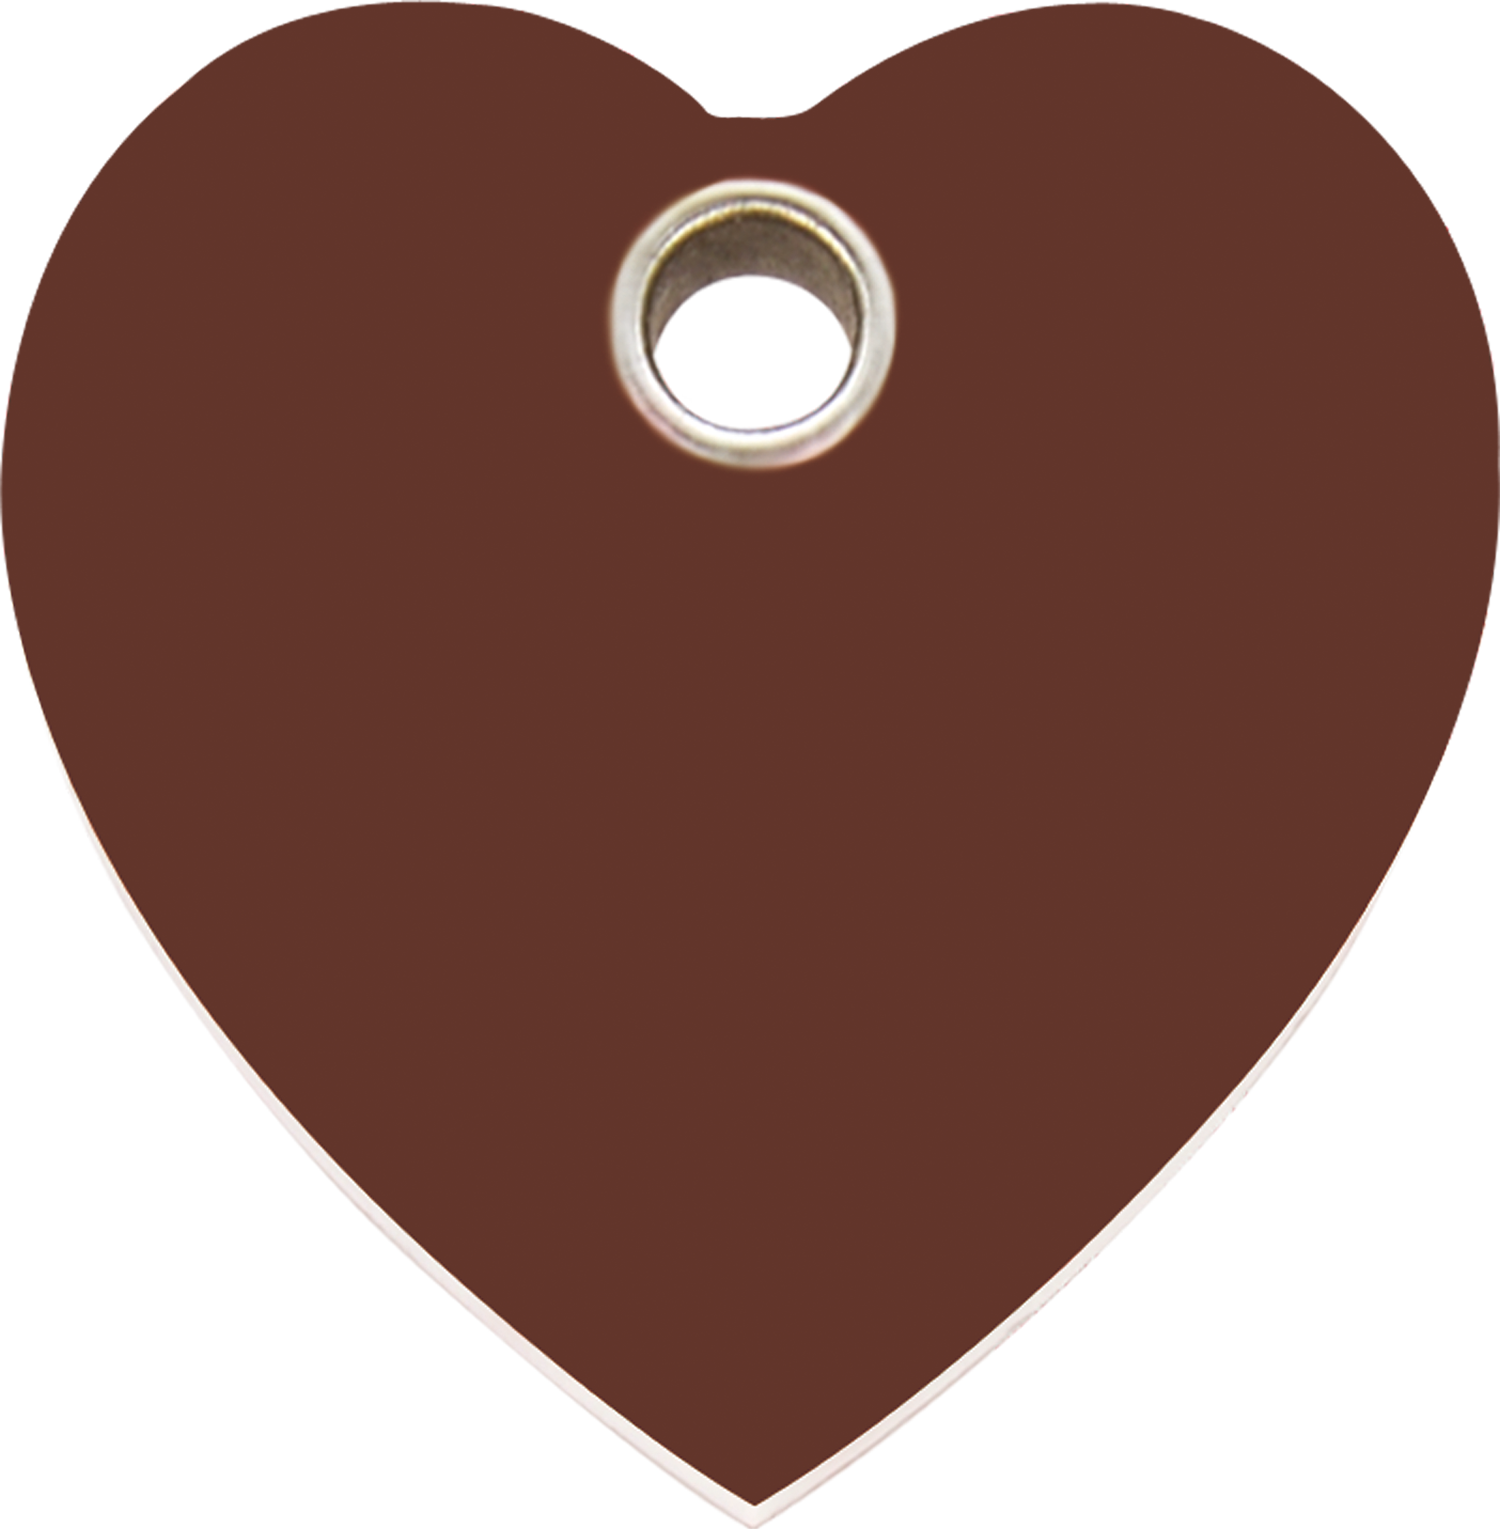 Brown heart clipart graphic royalty free download Red Dingo Plastic Tag Heart Brown 04-HT-BR (4HTBRS / 4HTBRM / 4HTBRL) graphic royalty free download